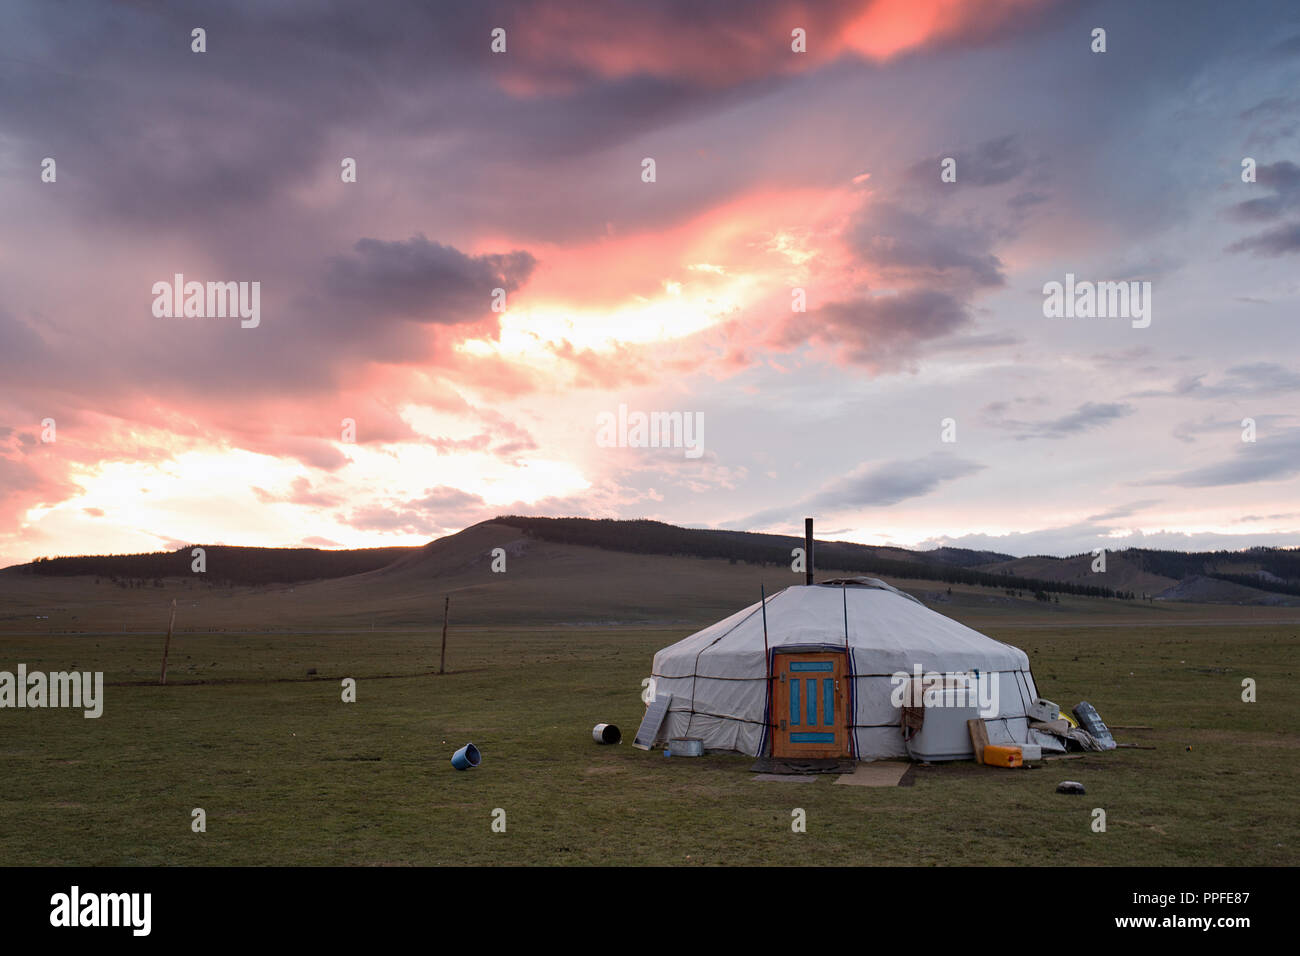 Dramatic sunset over a mongolian yurt, Khatgal, Mongolia - Stock Image